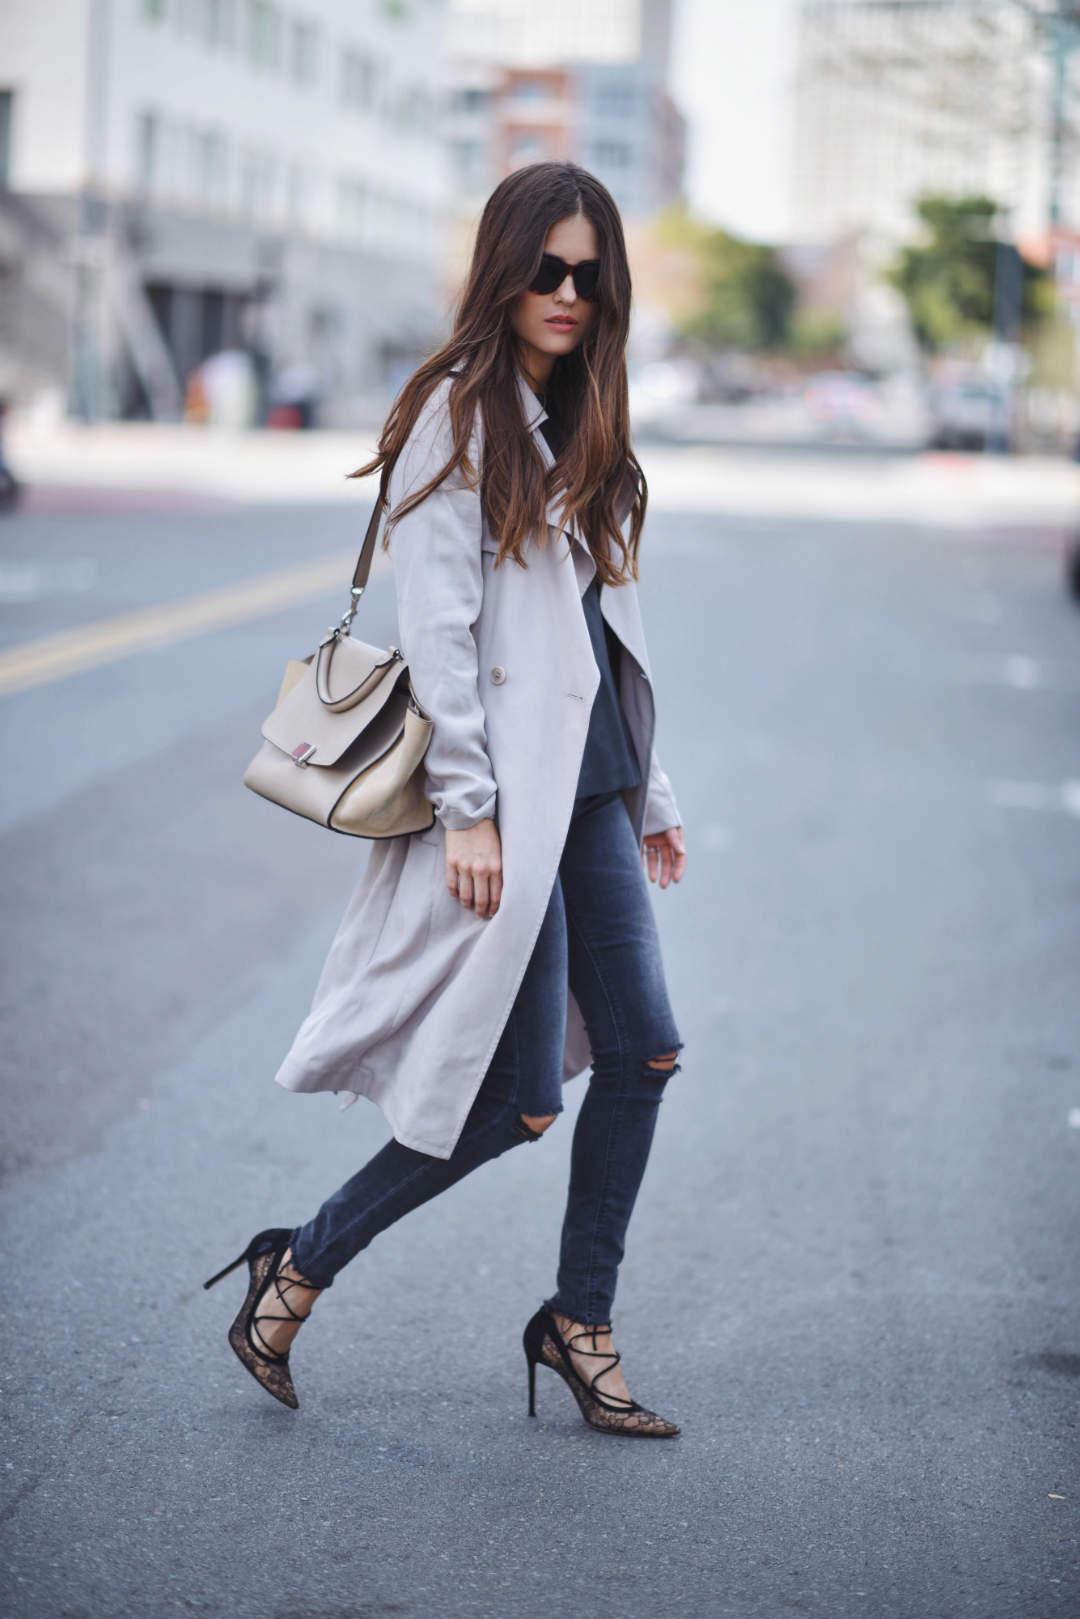 Wear the draped trench coat style with distressed denim jeans and strappy stilettos to steal Paola Alberdi's simplistic but glamorous style! Coat: Reiss, Blouse/Jeans: Zara, Pumps: Gianvito Rossi, Bag: Celine.